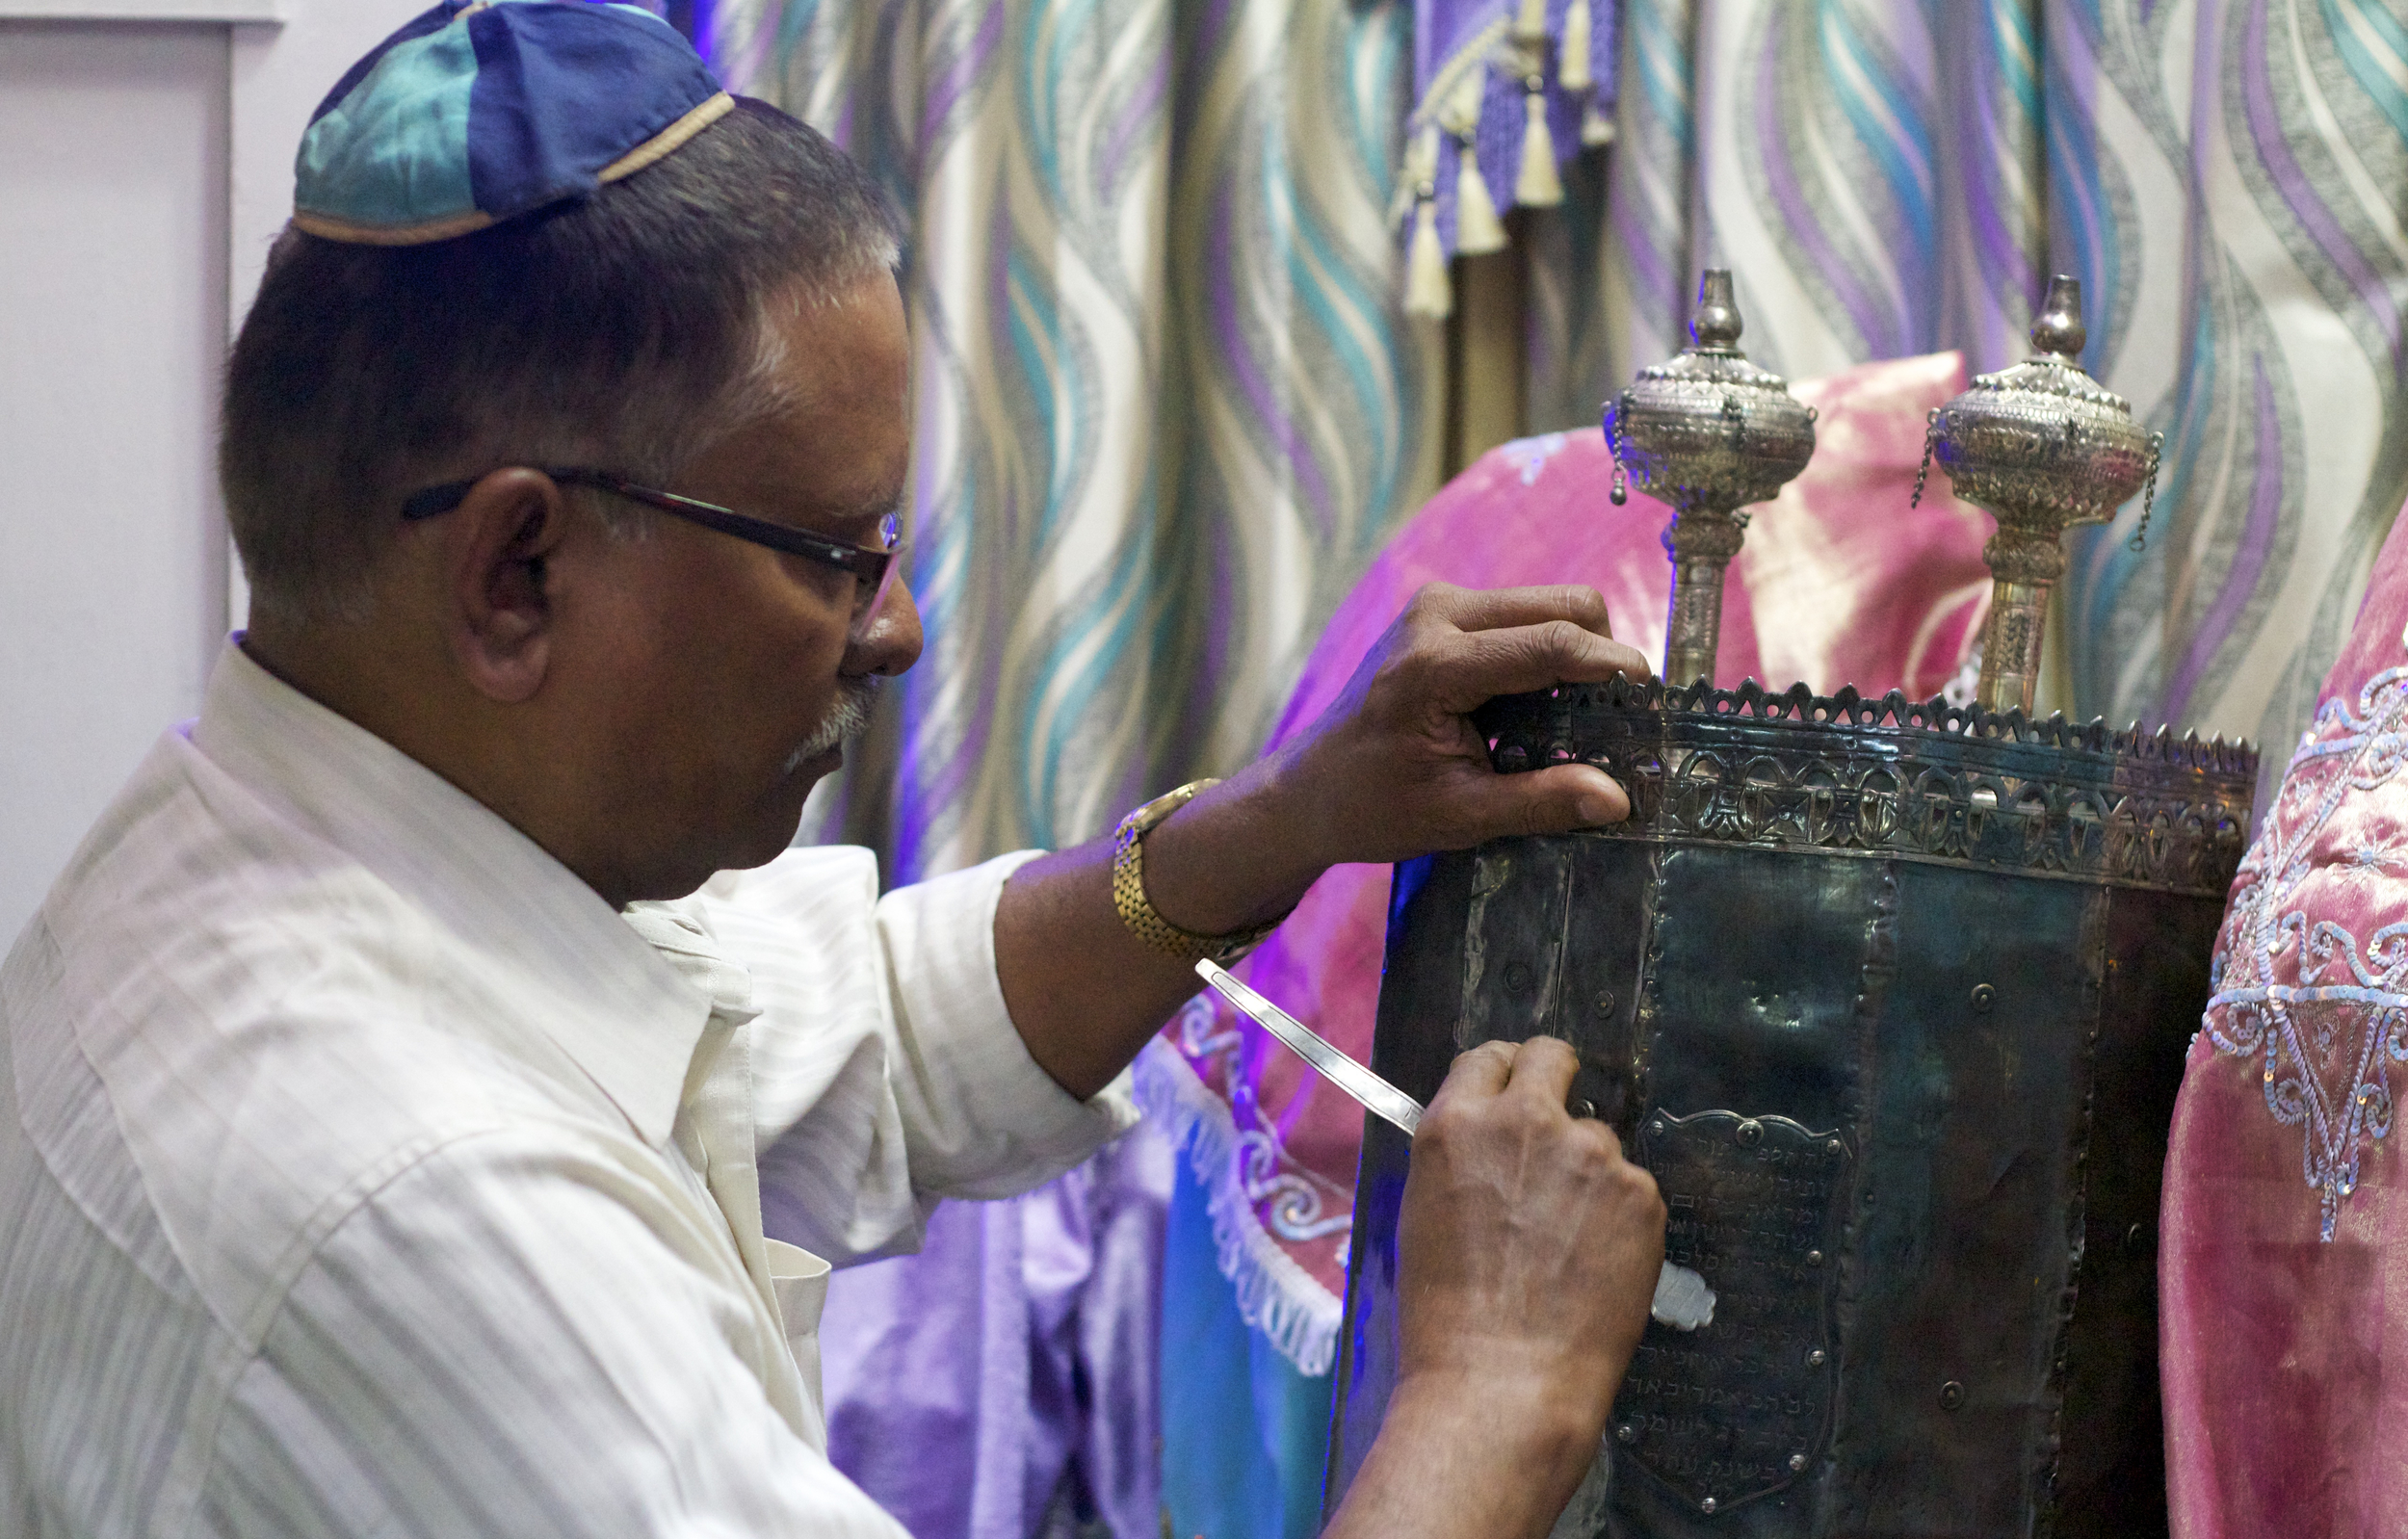 A man secures the Torah in the Magen Abraham Synagogue in Ahmedabad, India.